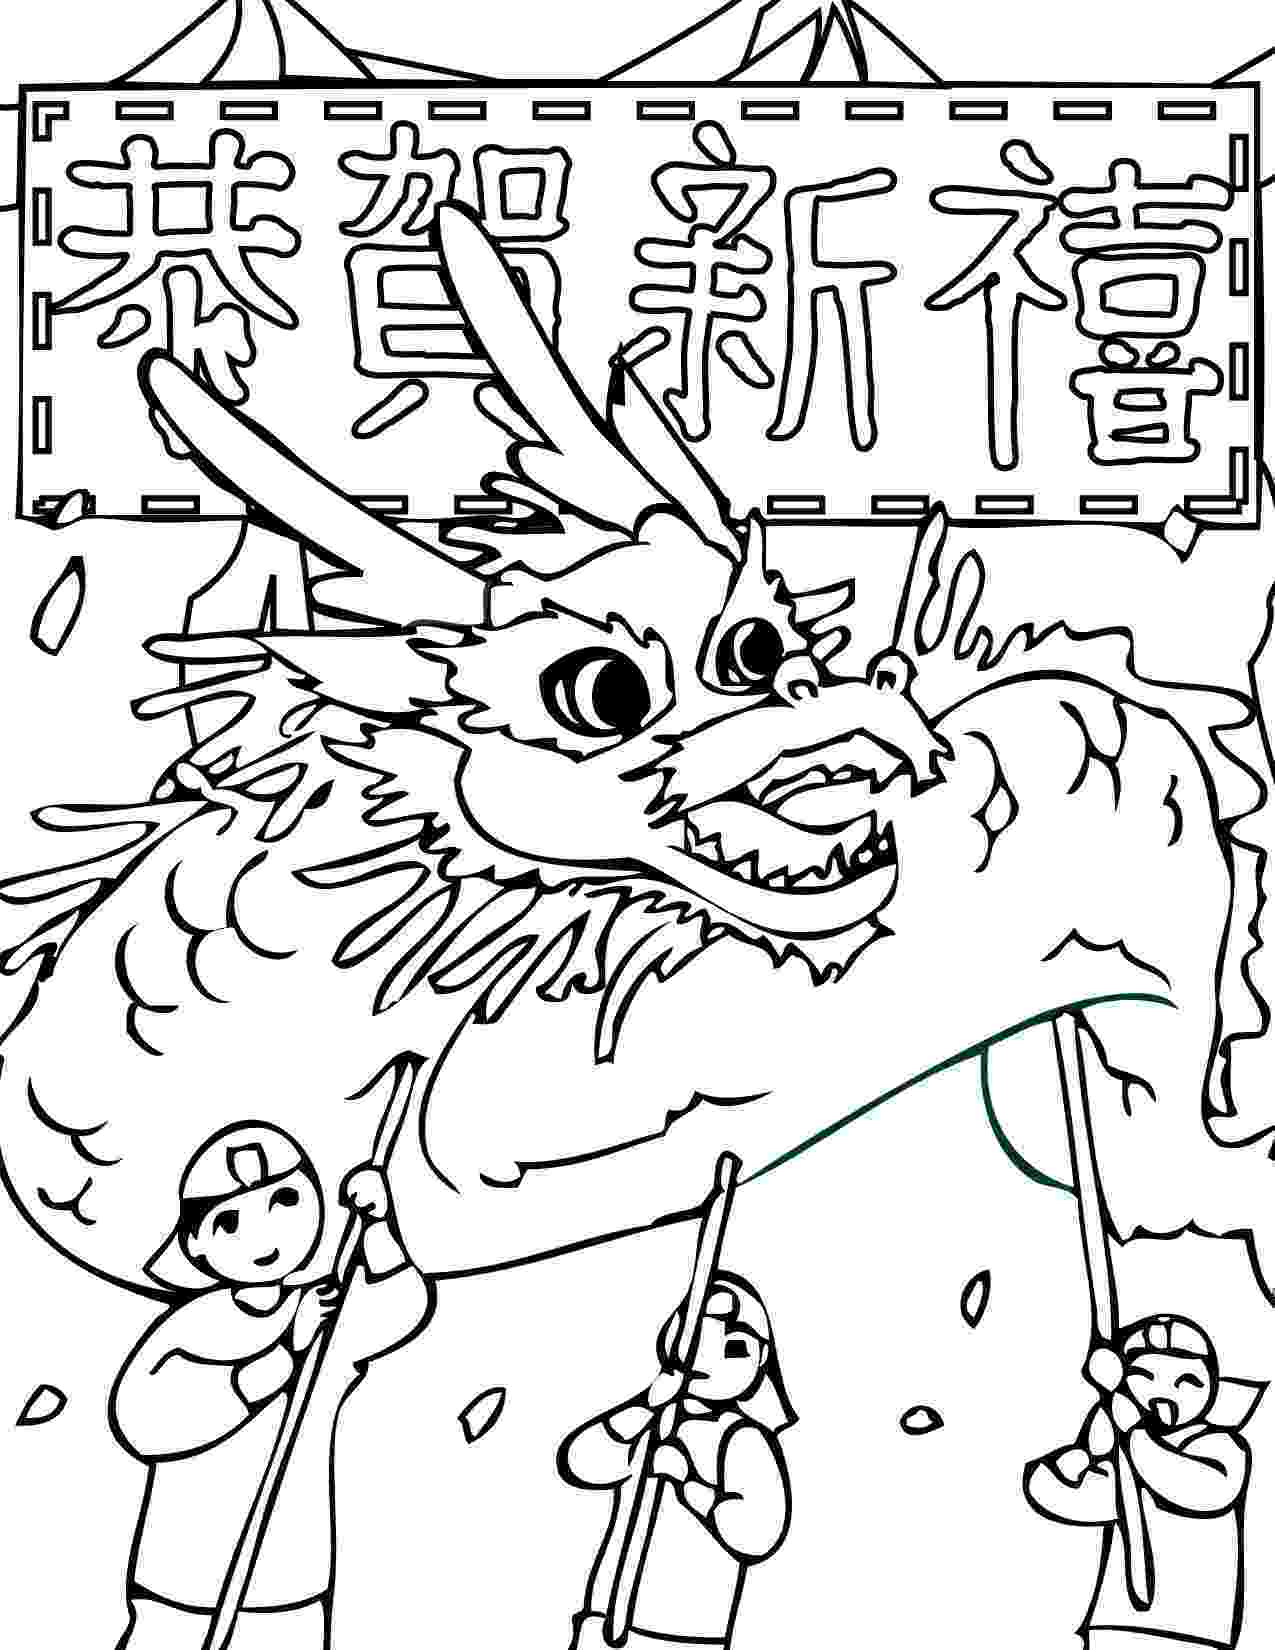 chinese new year coloring pages chinese new year coloring pages best coloring pages for kids coloring pages new year chinese